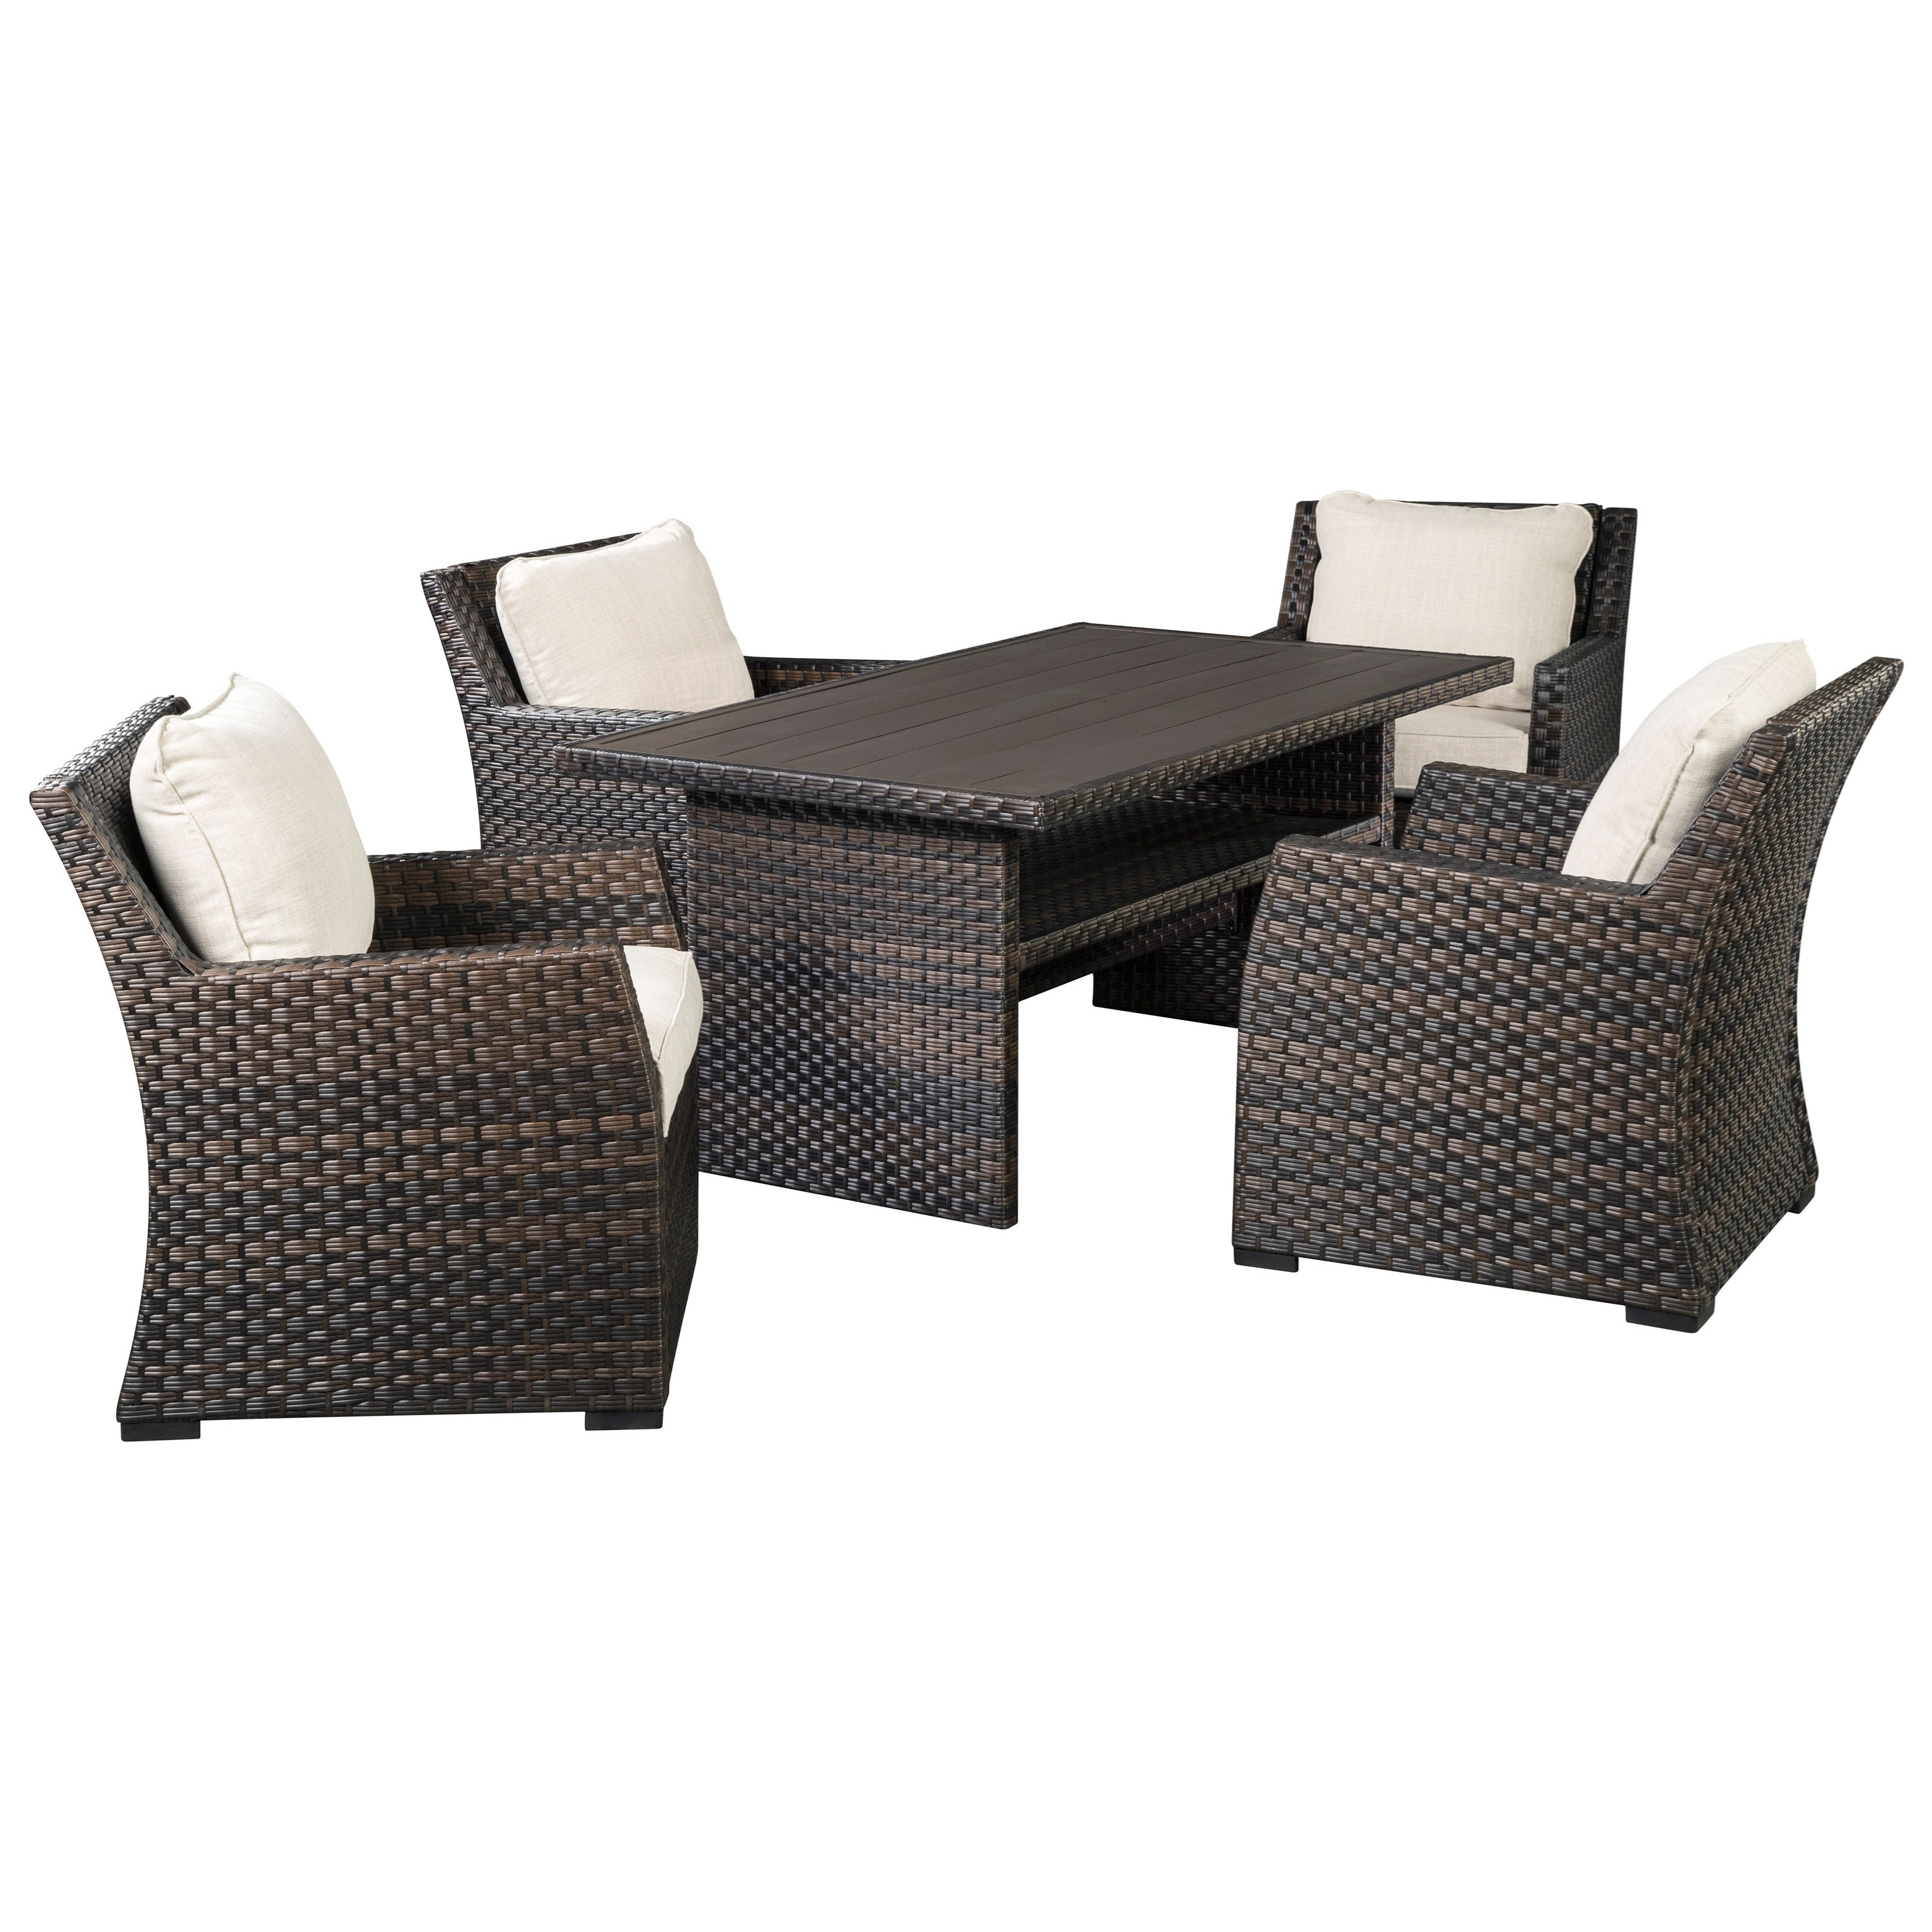 Easy Isle Multi-Use Table & 4 Lounge Chairs by Signature at Walker's Furniture